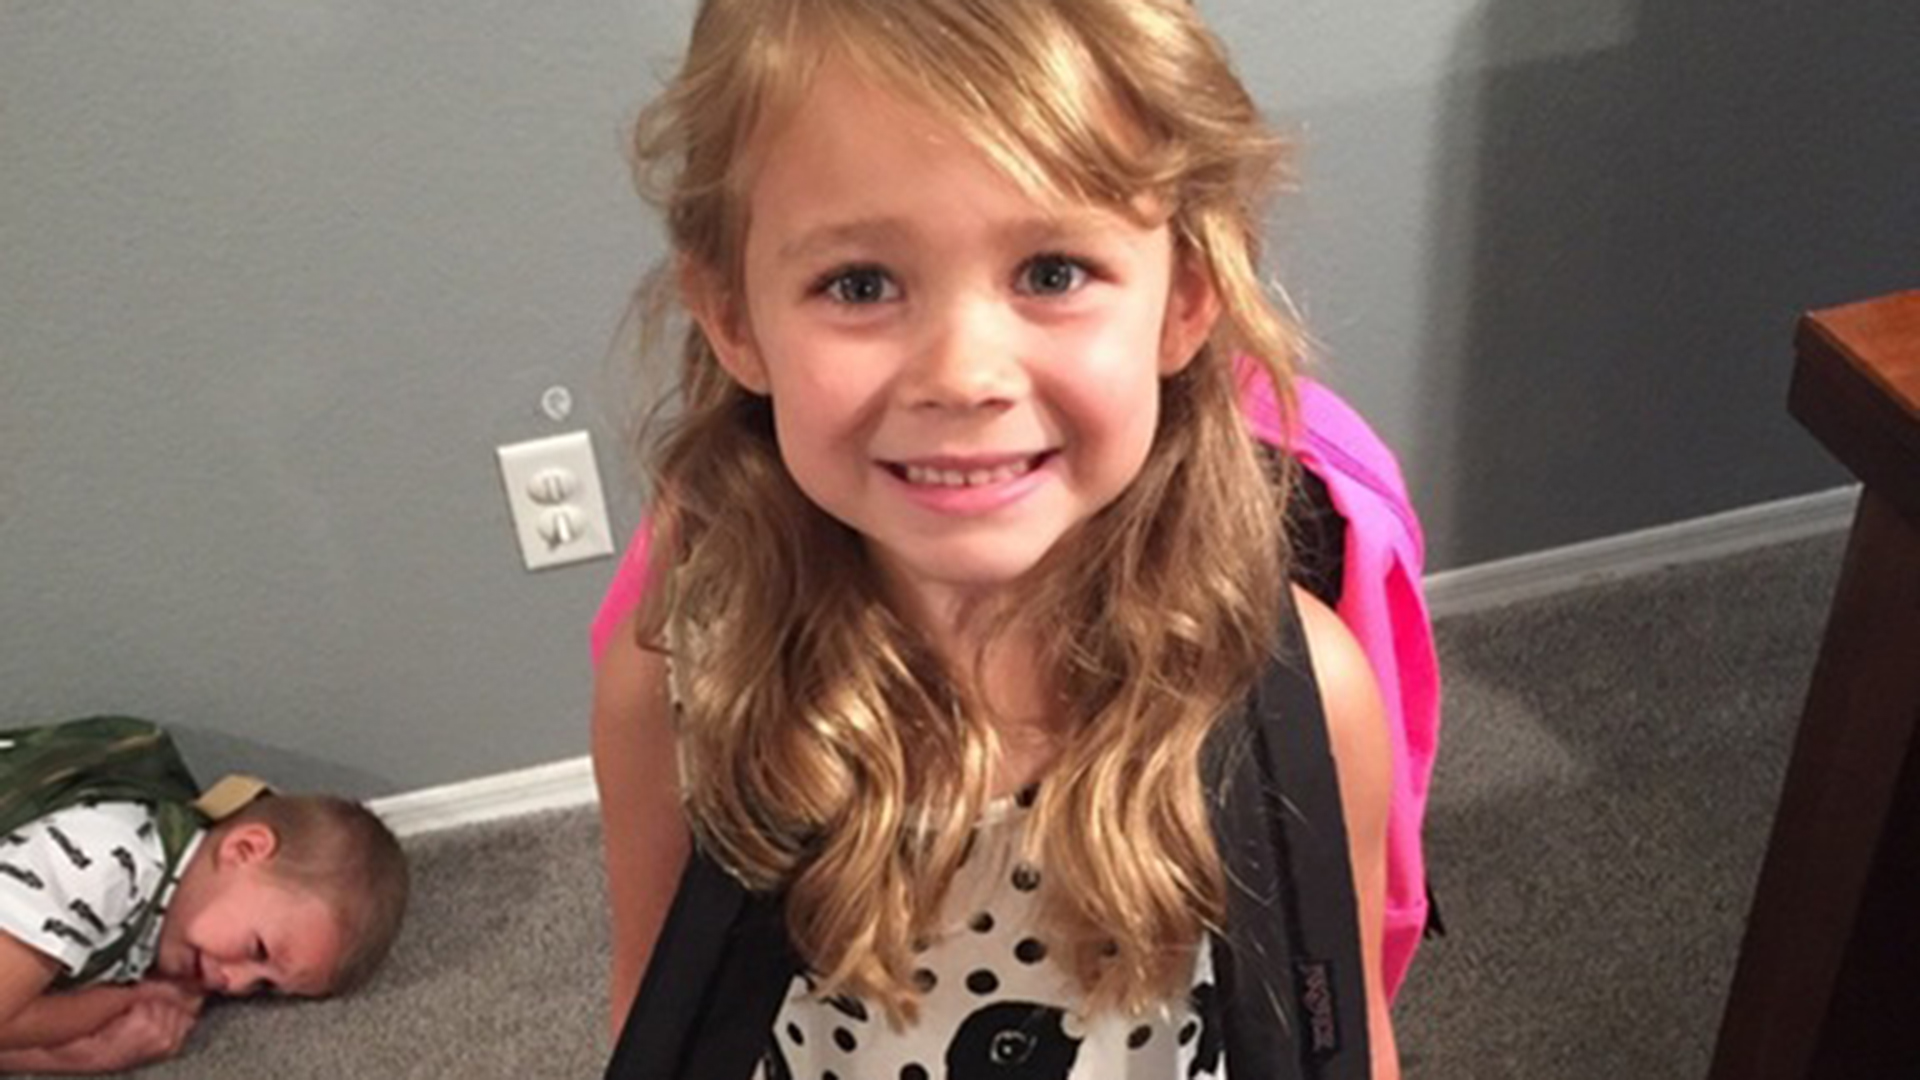 Photo Shows There Are Types Of Kids On The First Day Of School - Little girls reaction to seeing her parents clearly for the first time is adorable